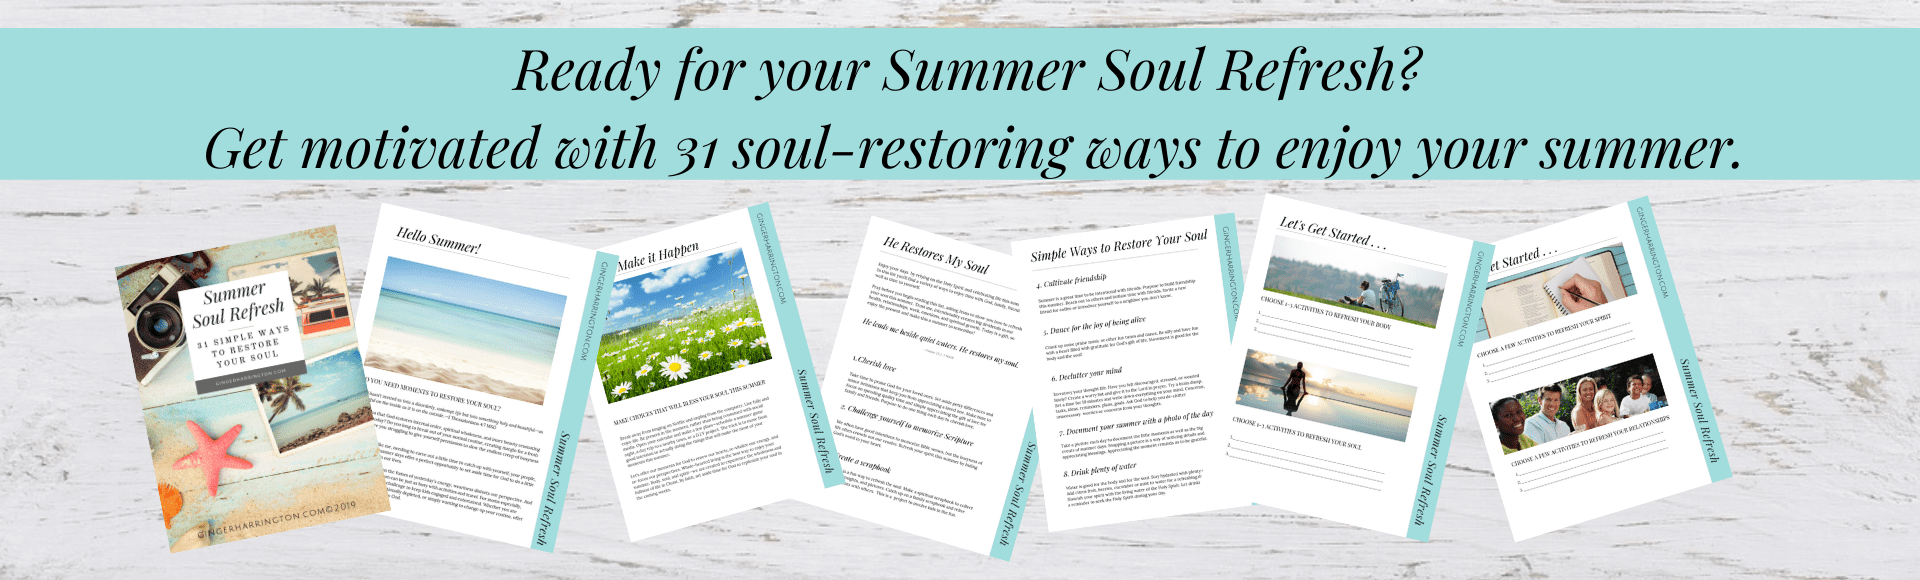 Break up with busy with 31 of our best ideas to refresh your soul this summer. Simple inspiration for Christian women to take time to nurture their soul this summer.